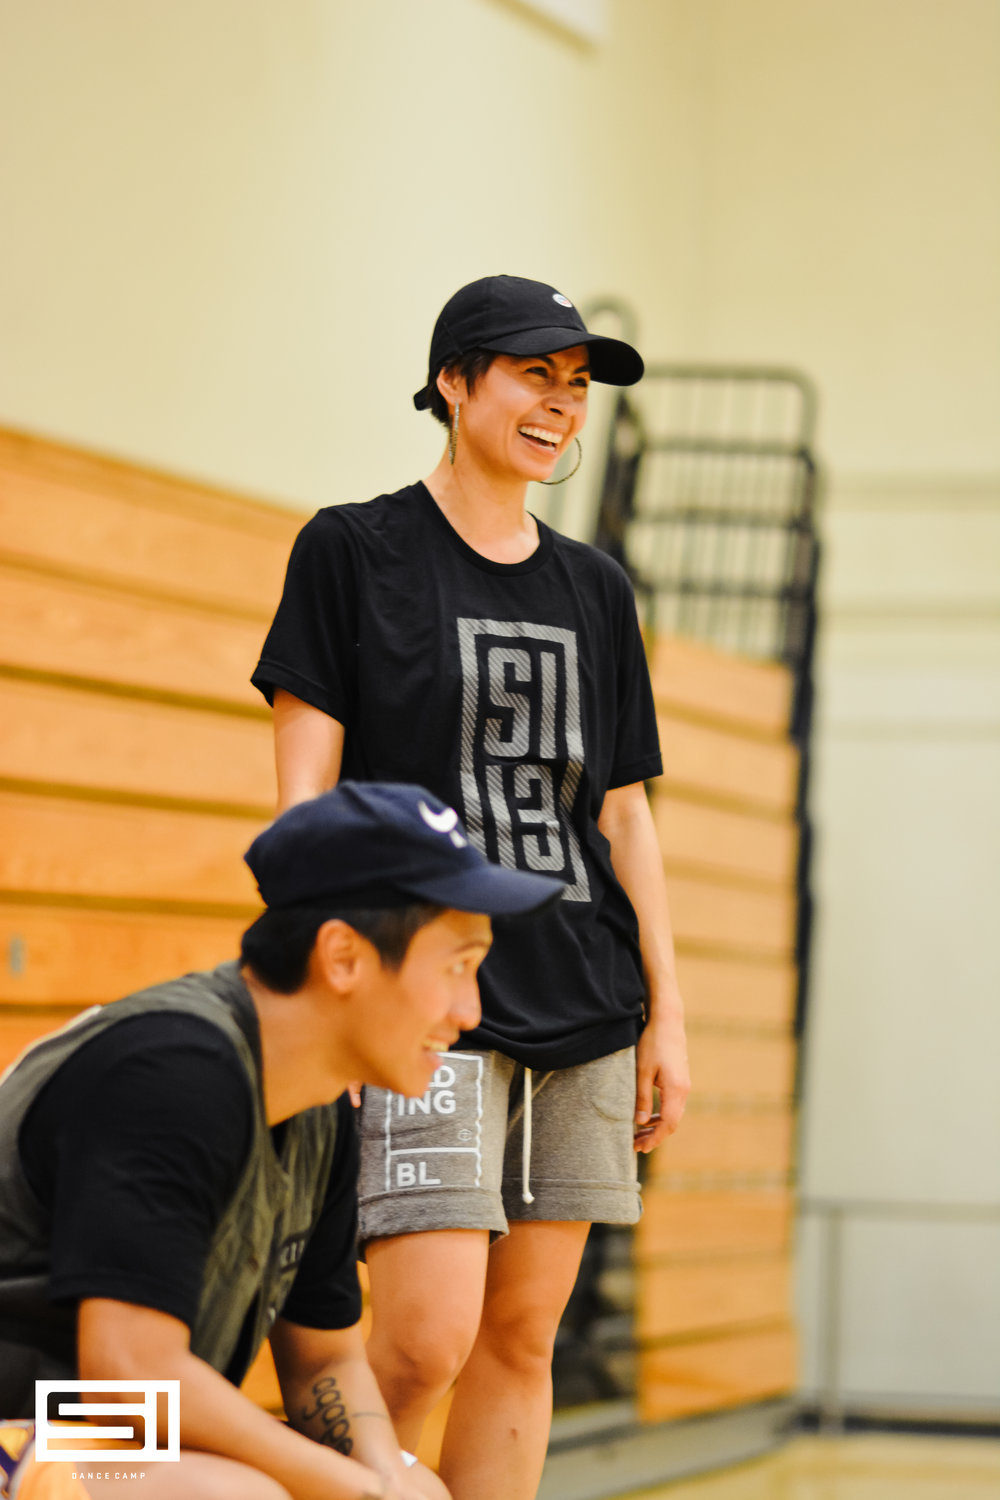 SI 13 SUMMER CAMP - DAY 3 (36 of 46).jpg